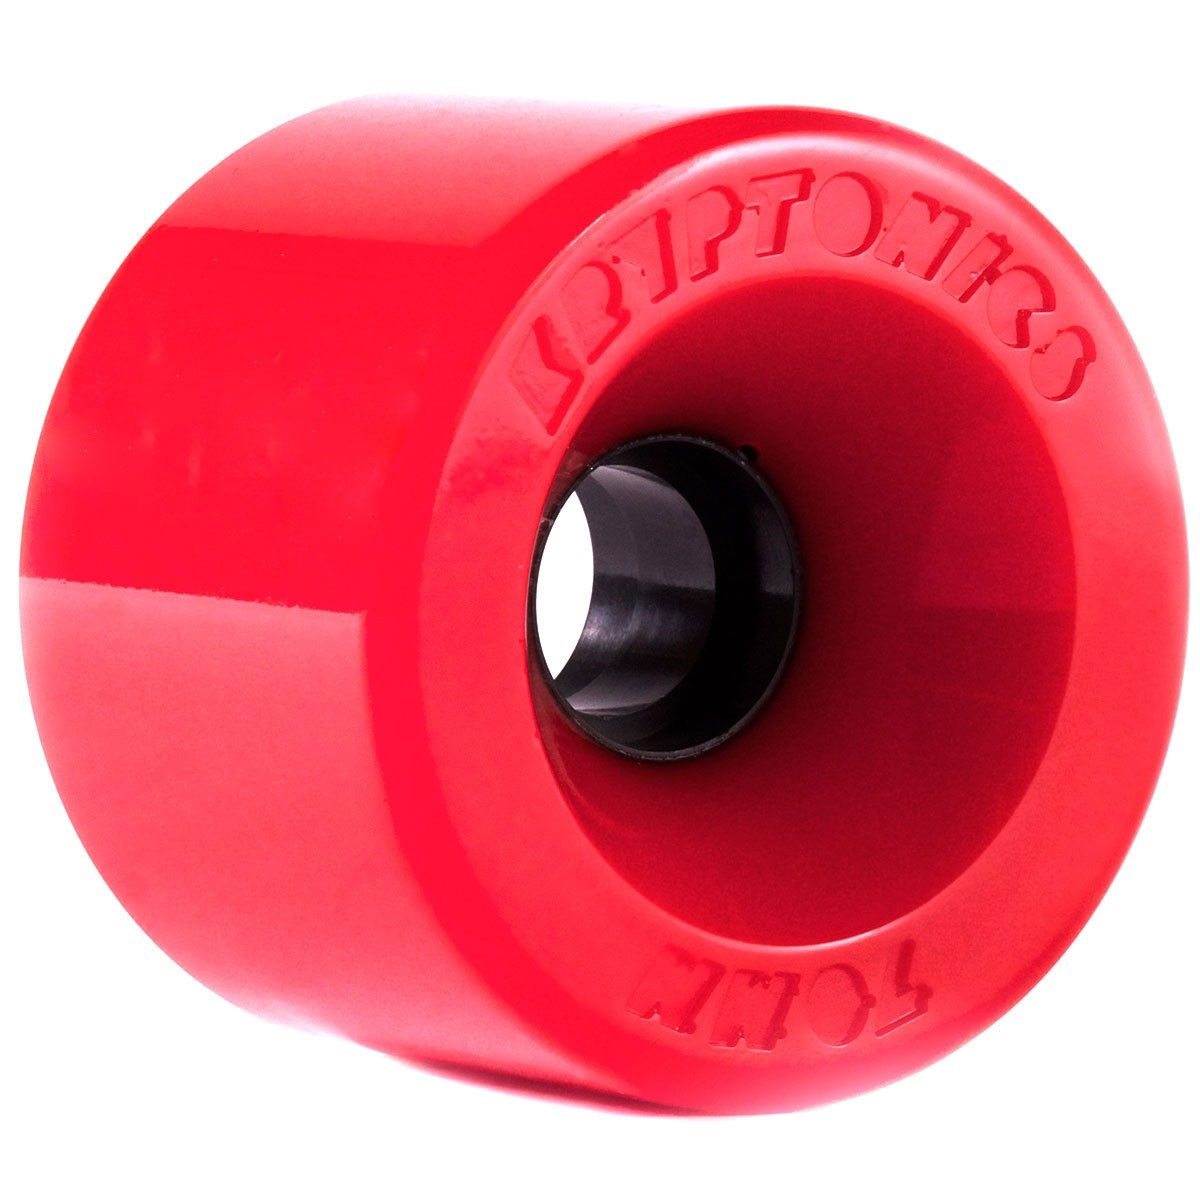 skateboard and wheels Skateboard wheels 97a 52mm neon pink (806c) set of 4 tgm skateboards  $2495 $995  tgm skateboards simply the best prices and selection.